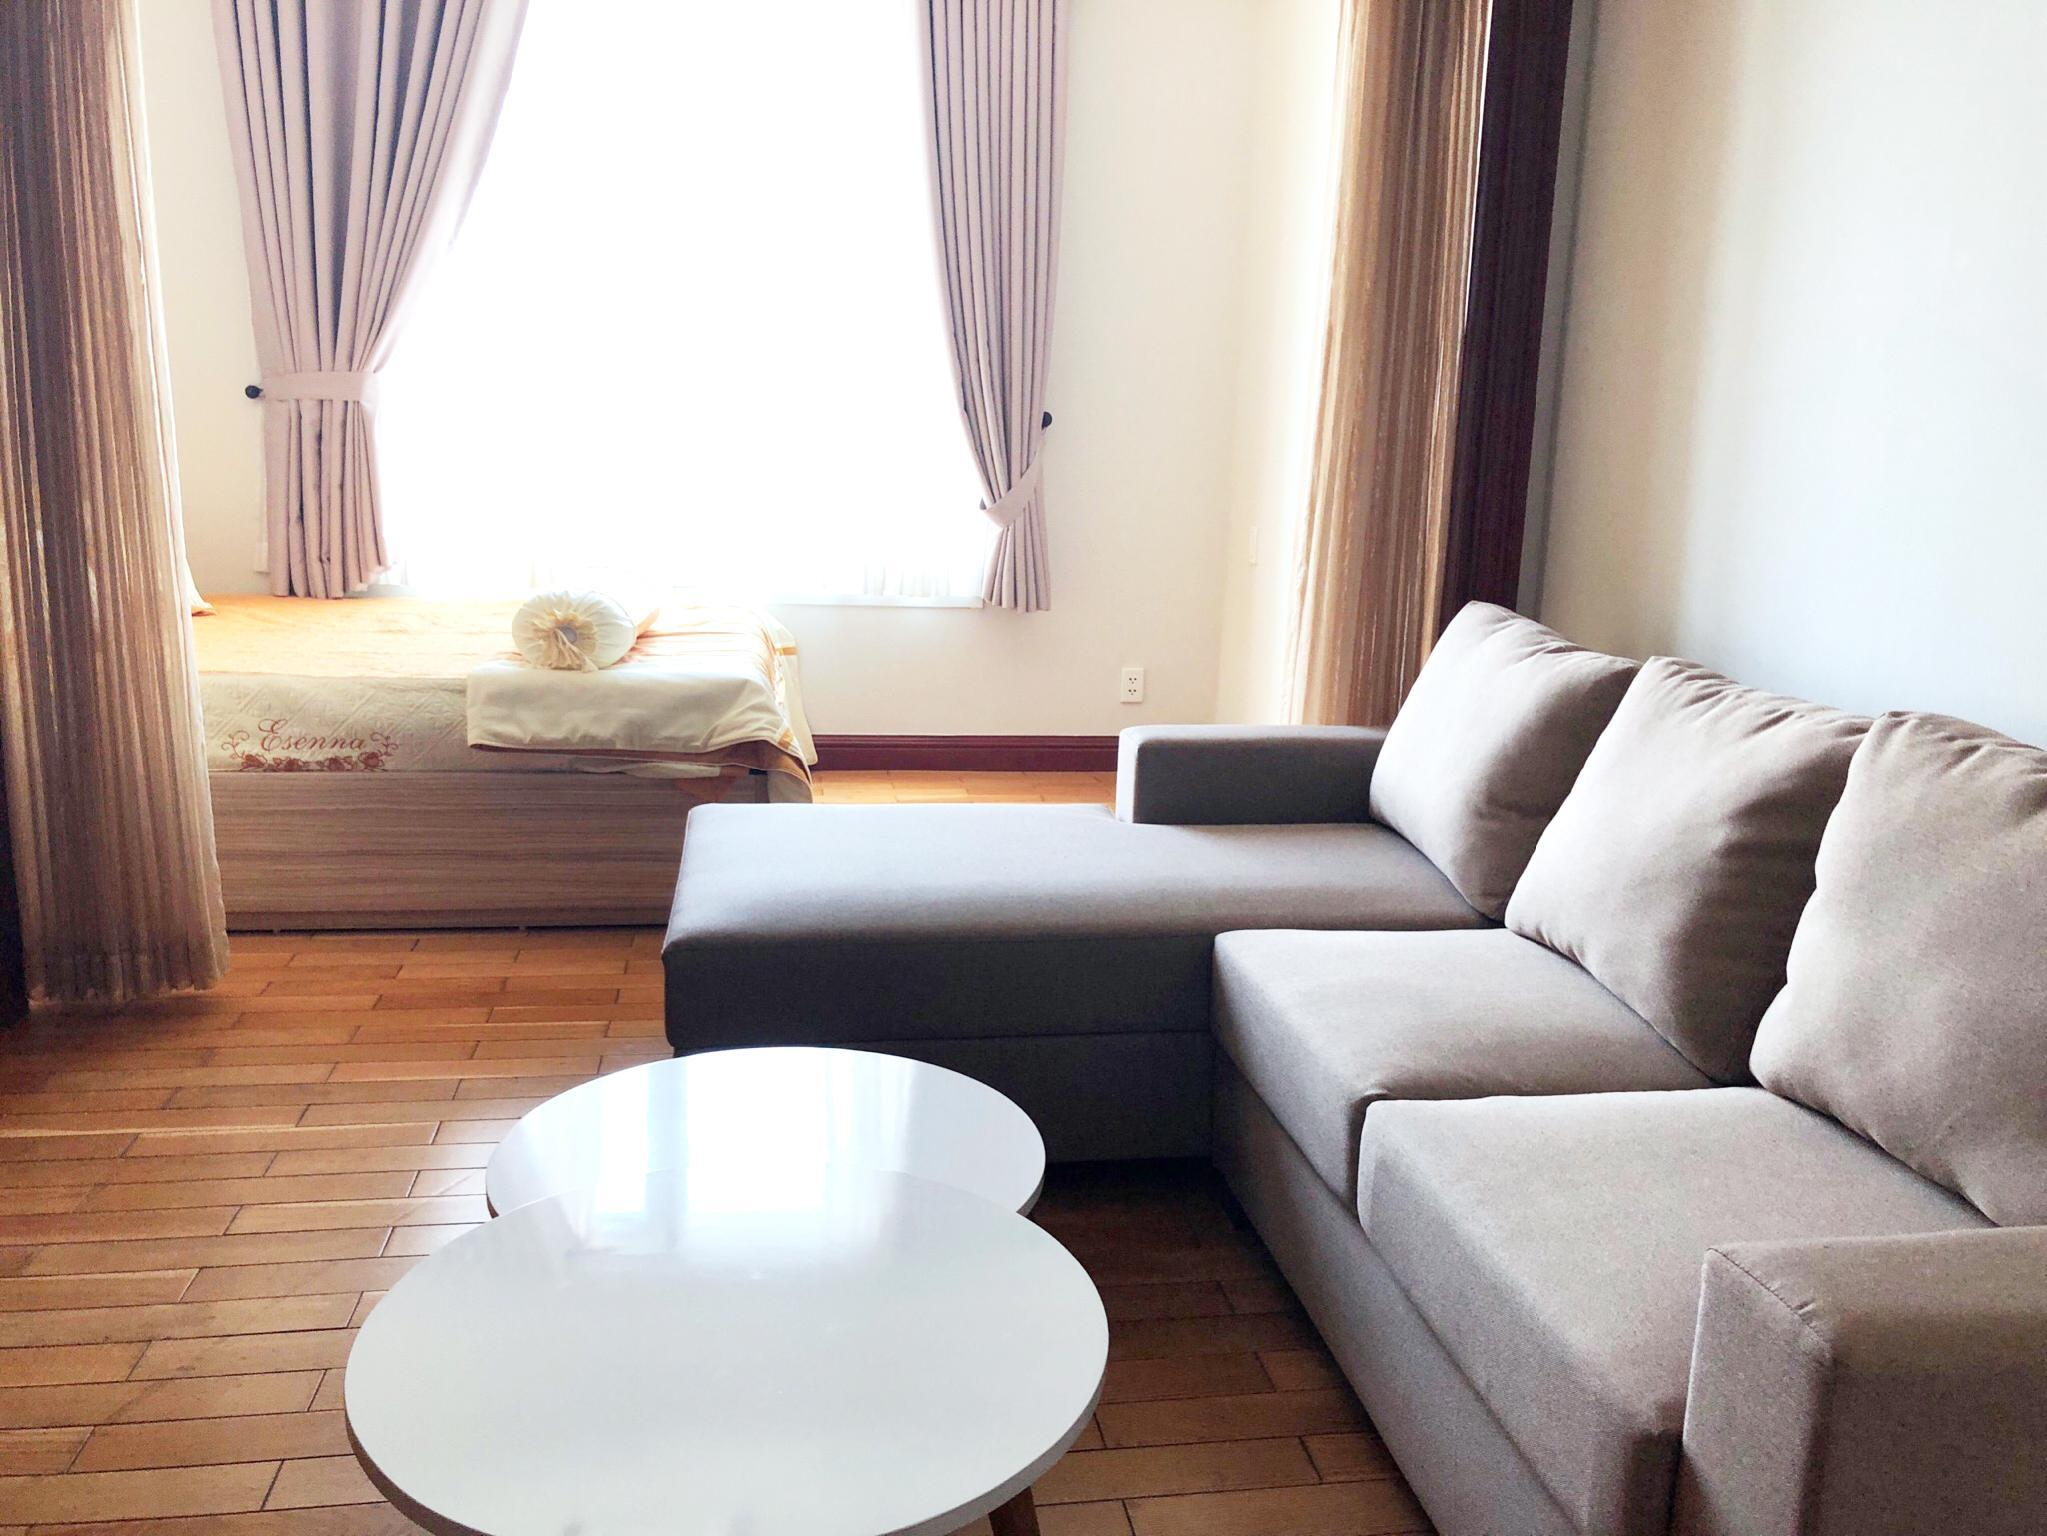 The Apartment Is Modern With The Best Price